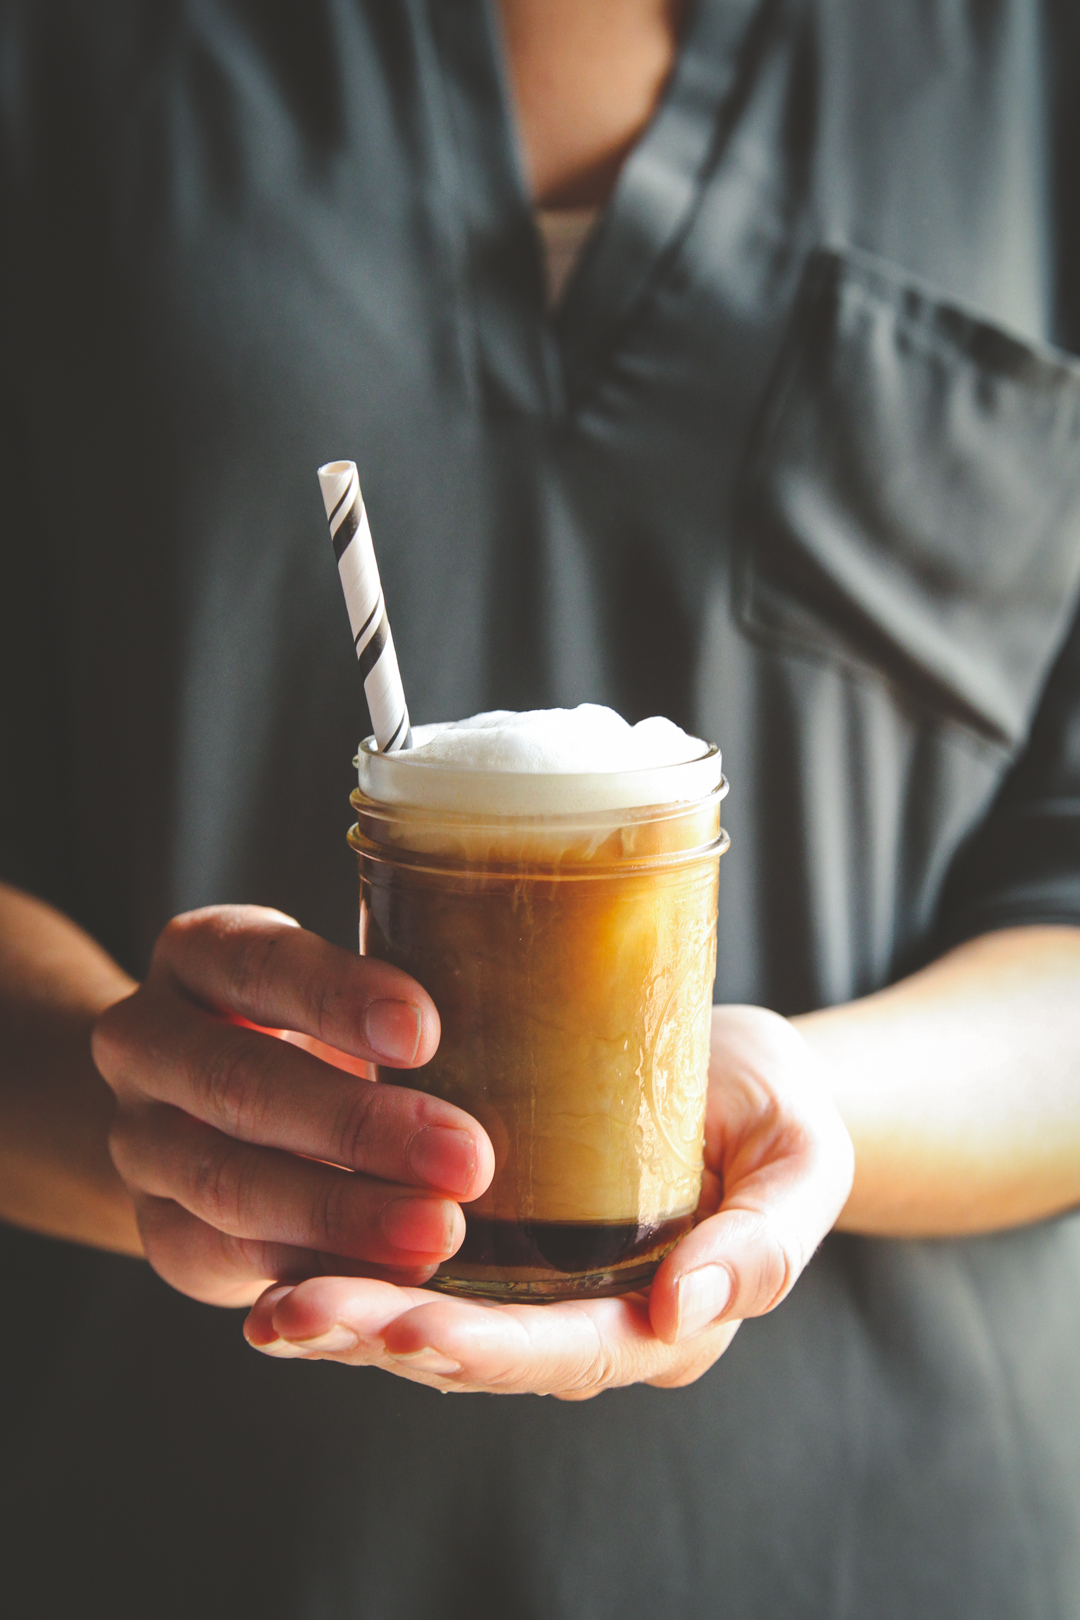 Coffee in a mason jar being held towards camera